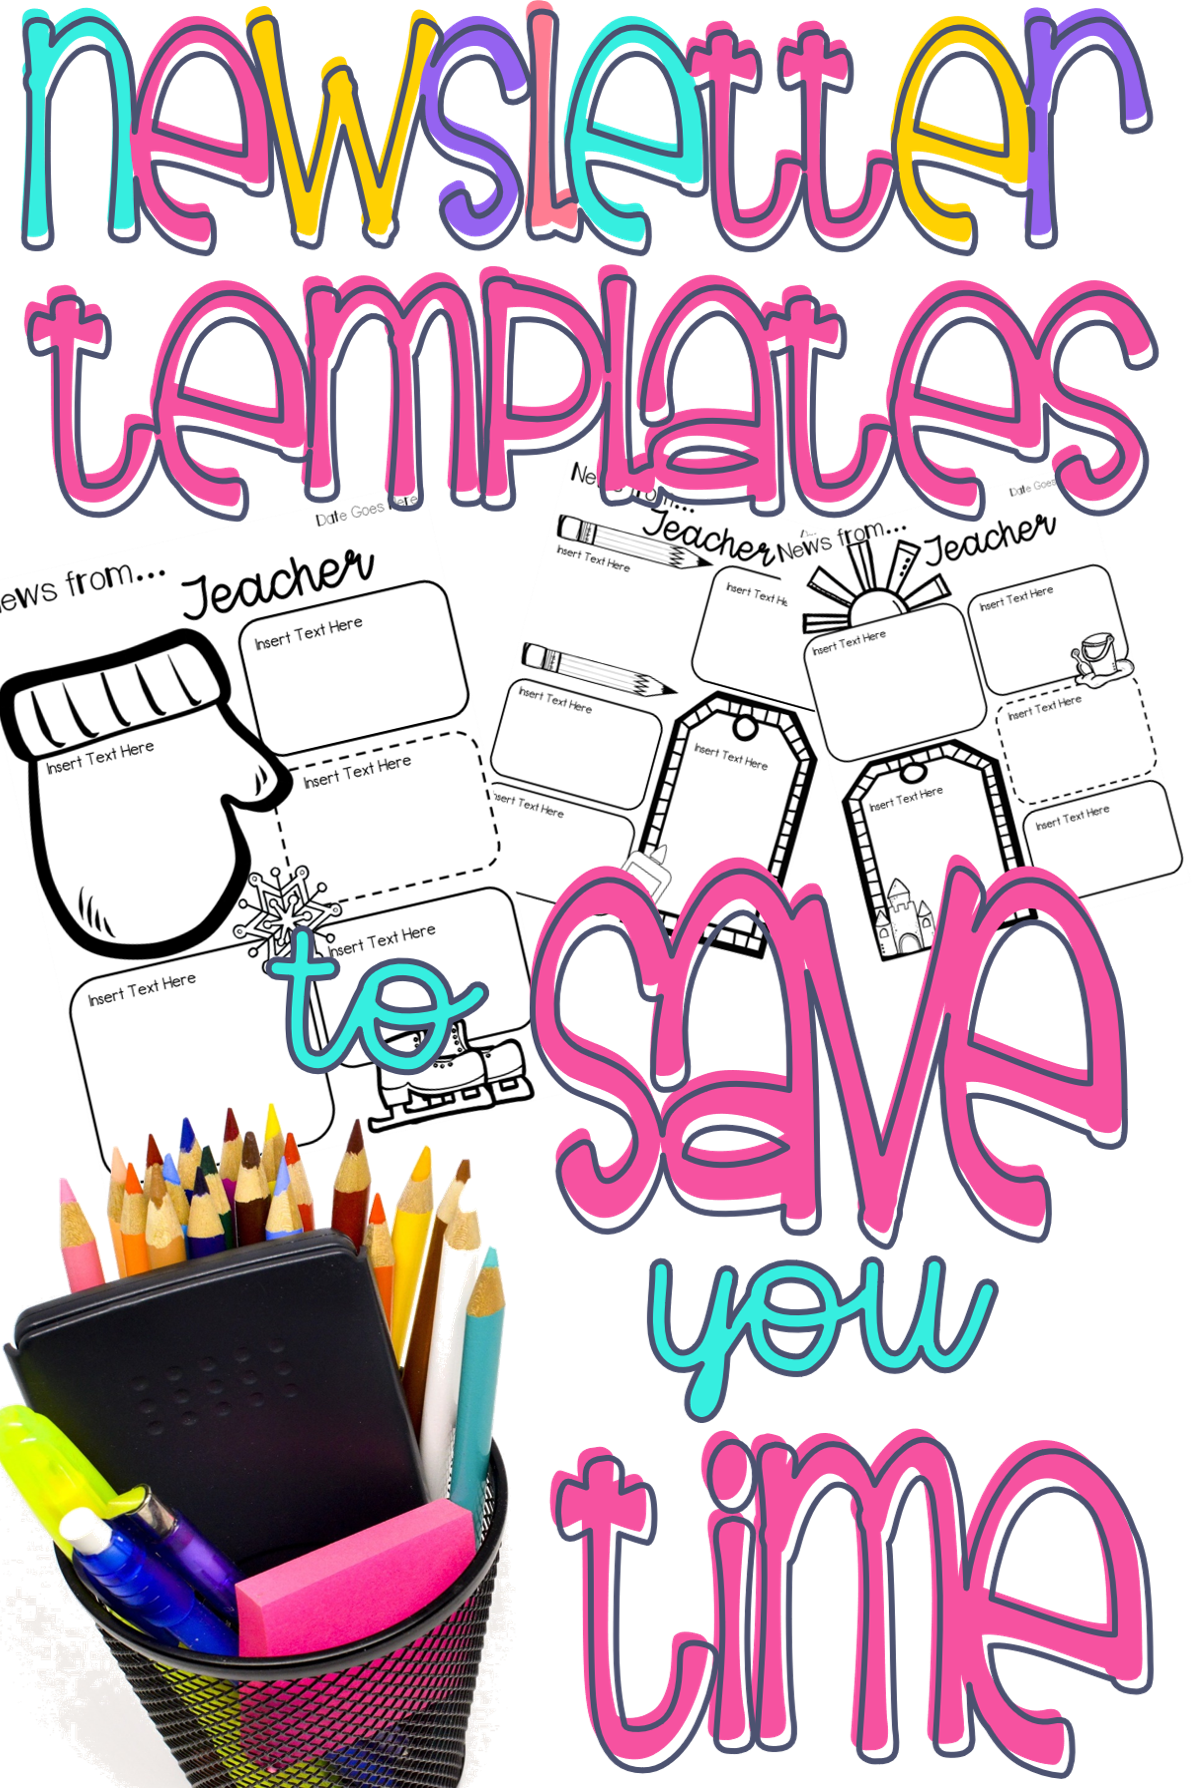 Newsletter clipart monthly newsletter. Editable templates with holiday